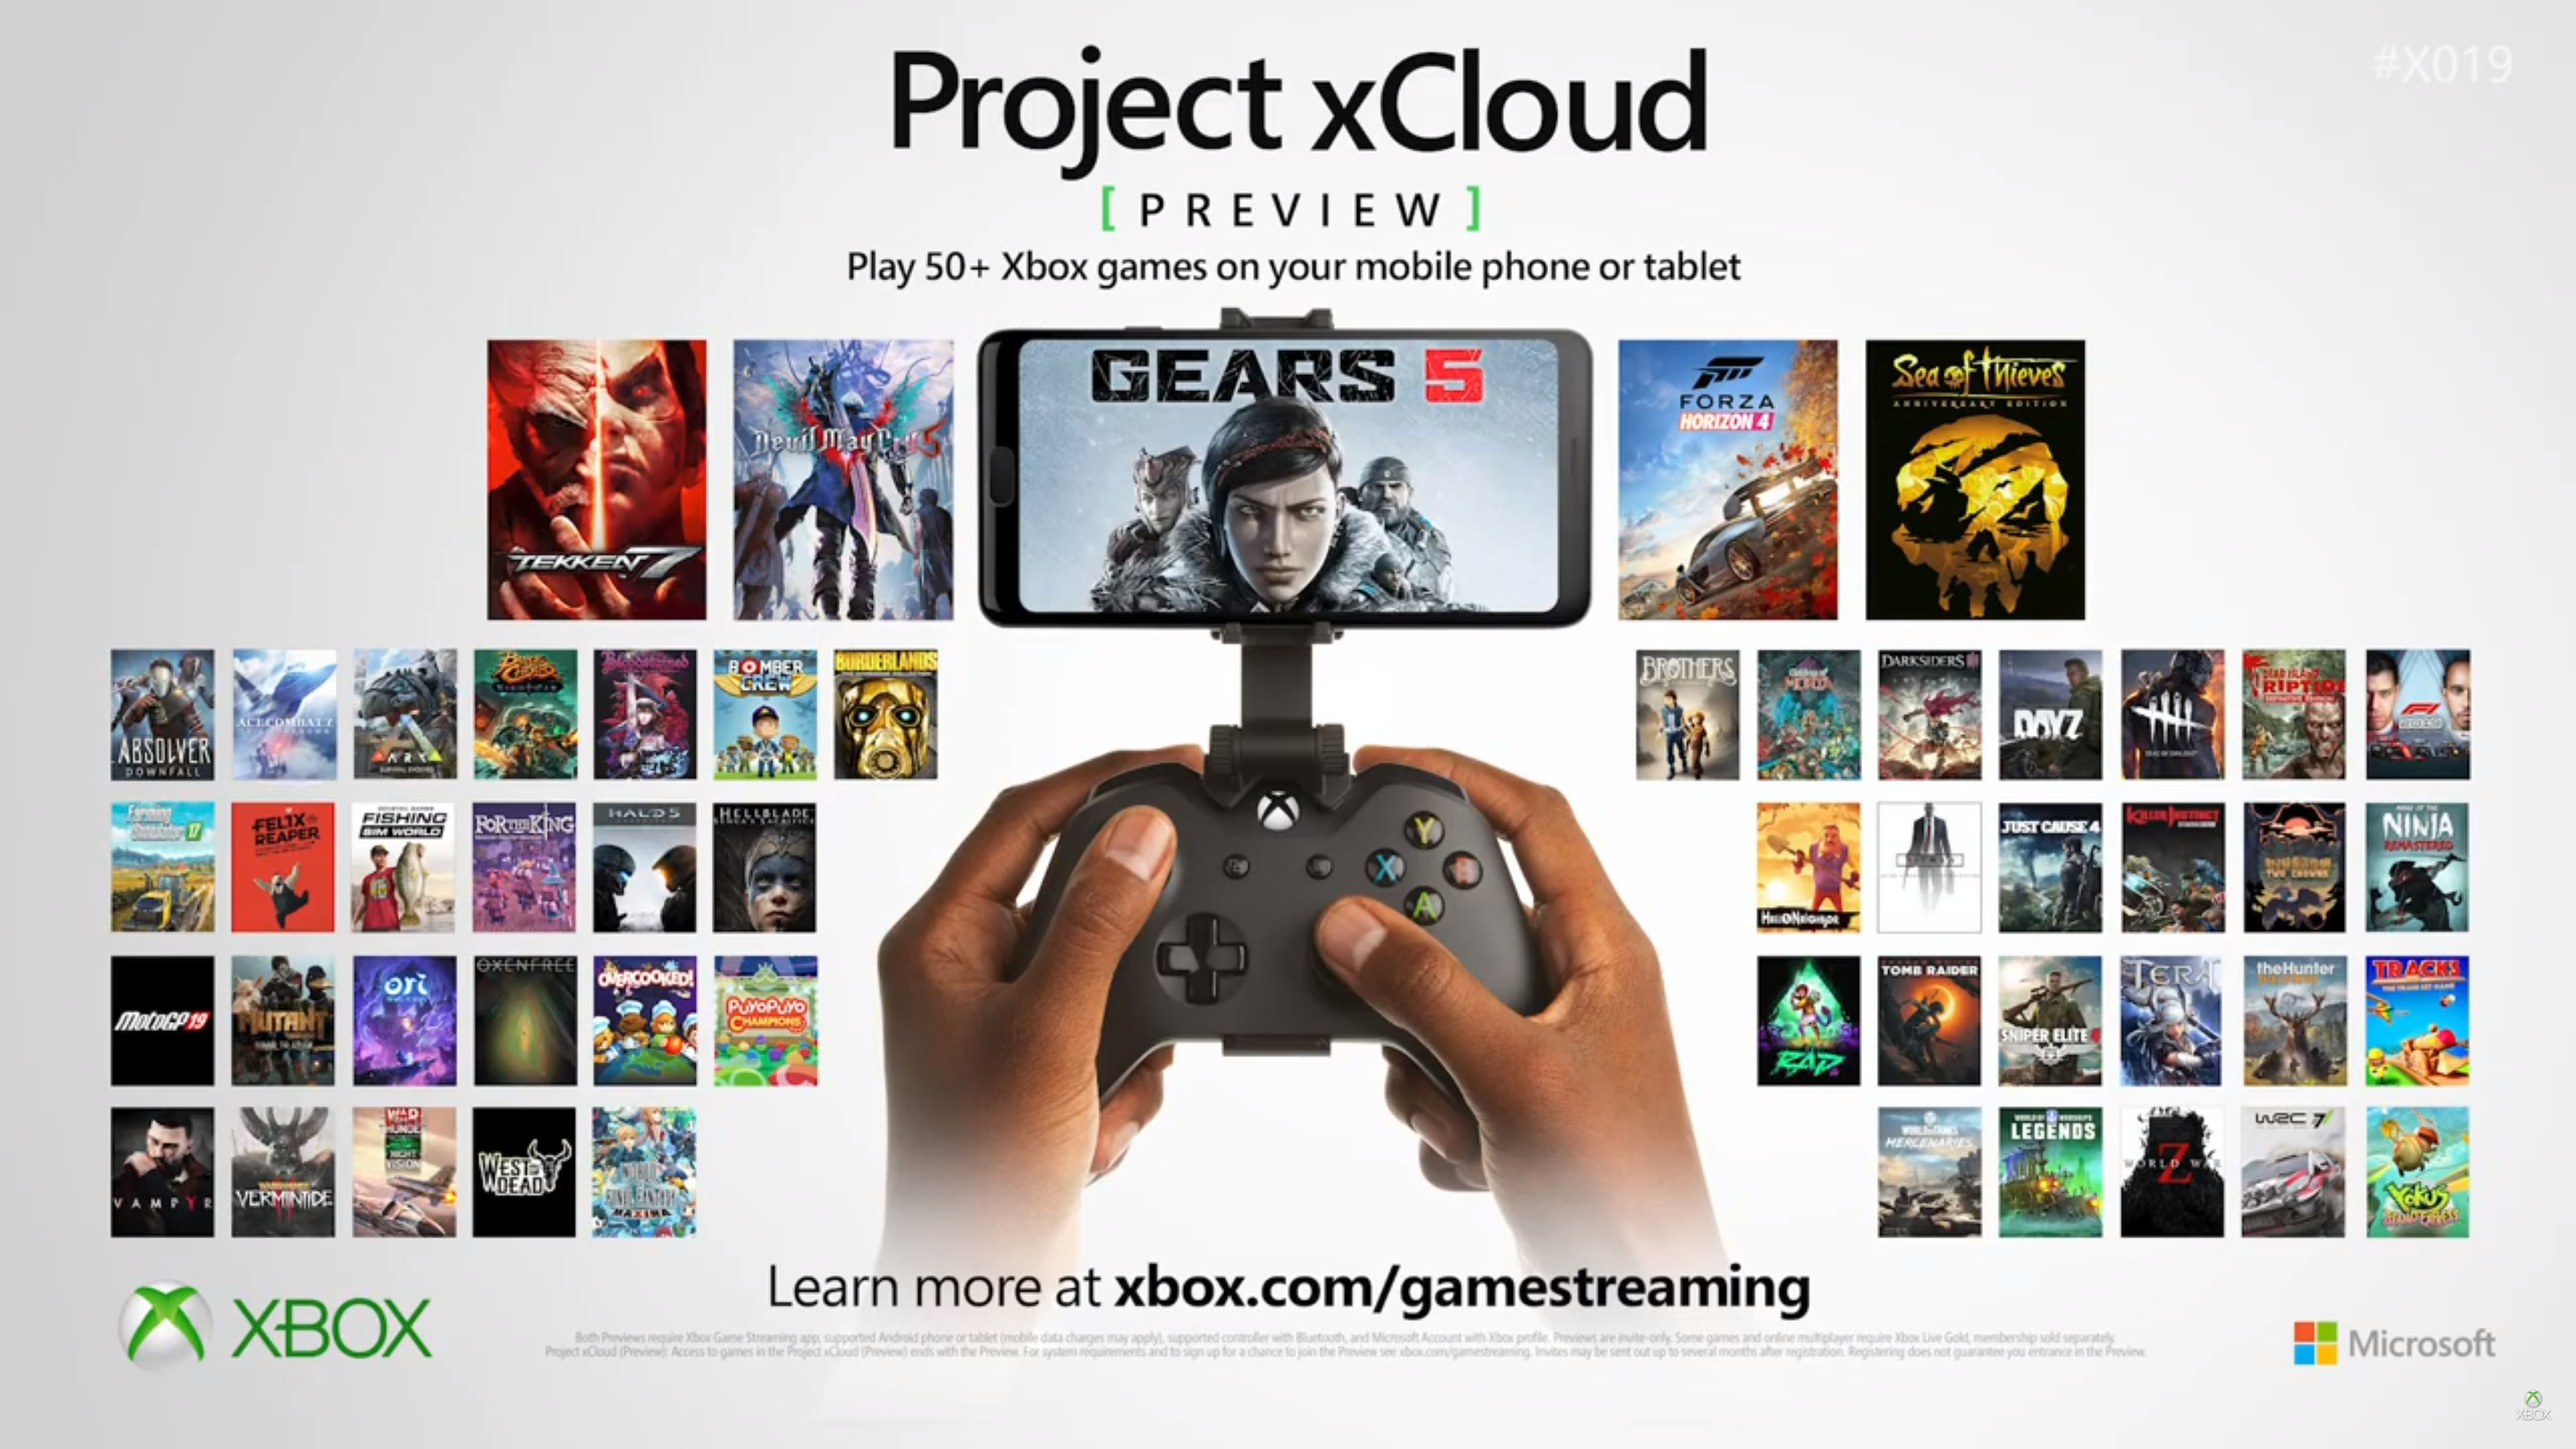 All Games Coming Out In 2020.Microsoft S Project Xcloud Now Has Over 50 Games Coming To